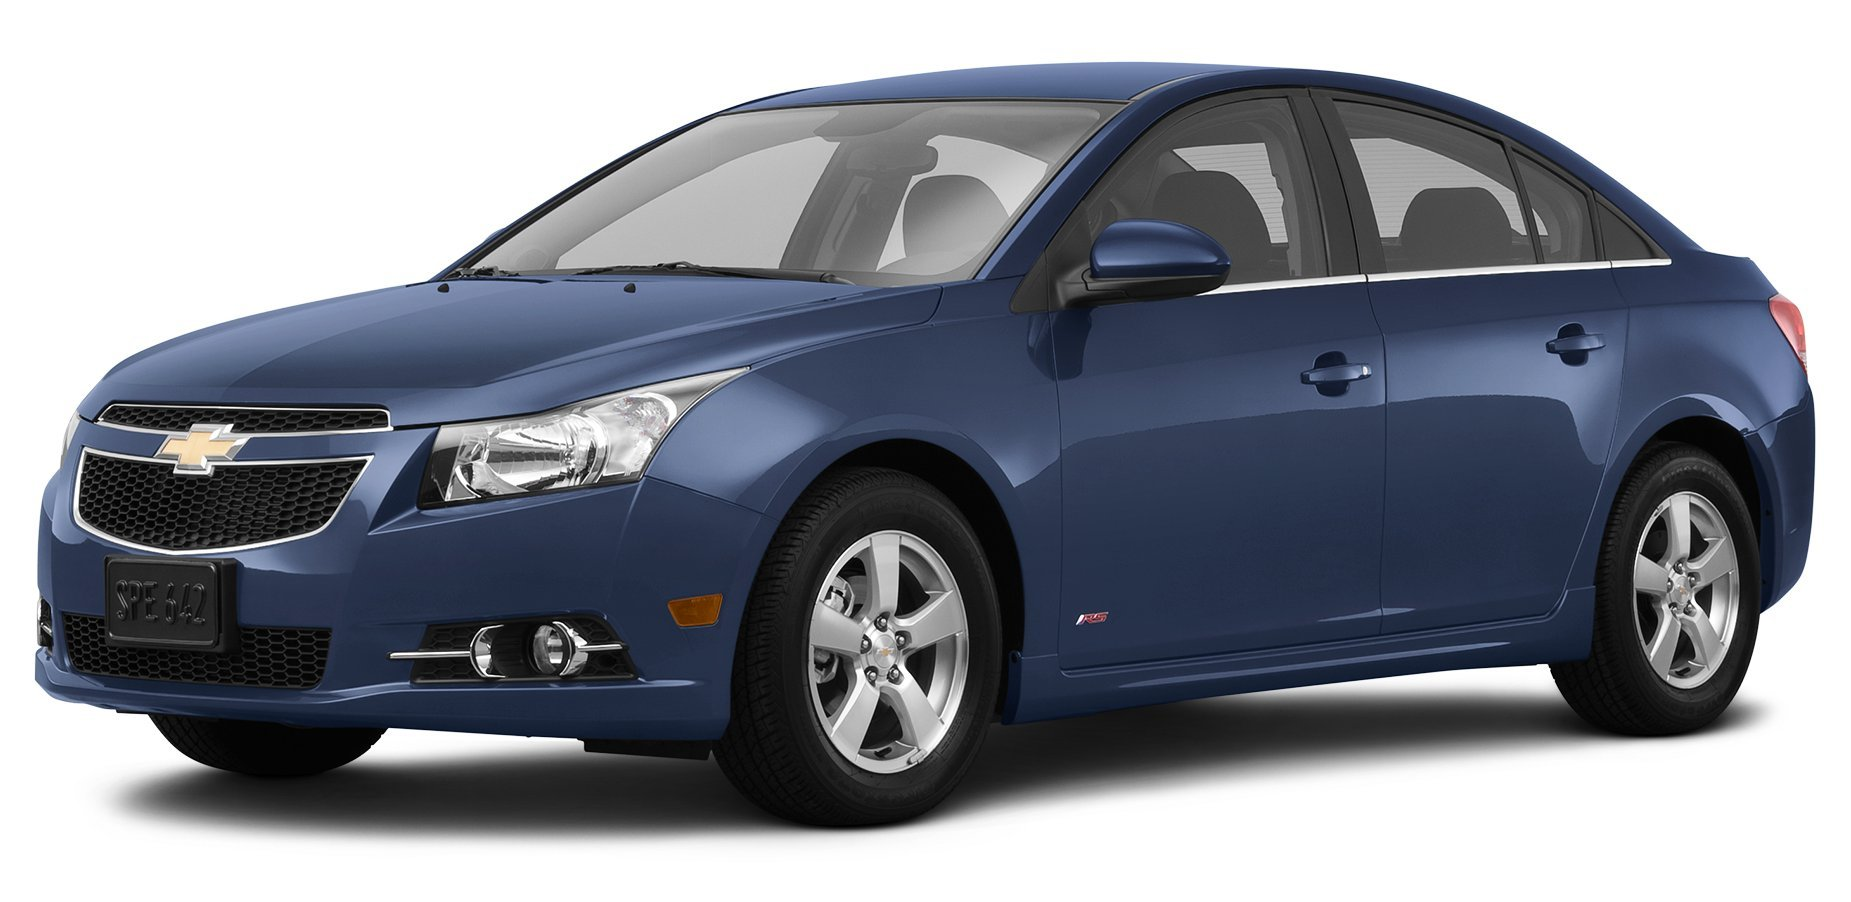 2013 chevrolet cruze reviews images and. Black Bedroom Furniture Sets. Home Design Ideas